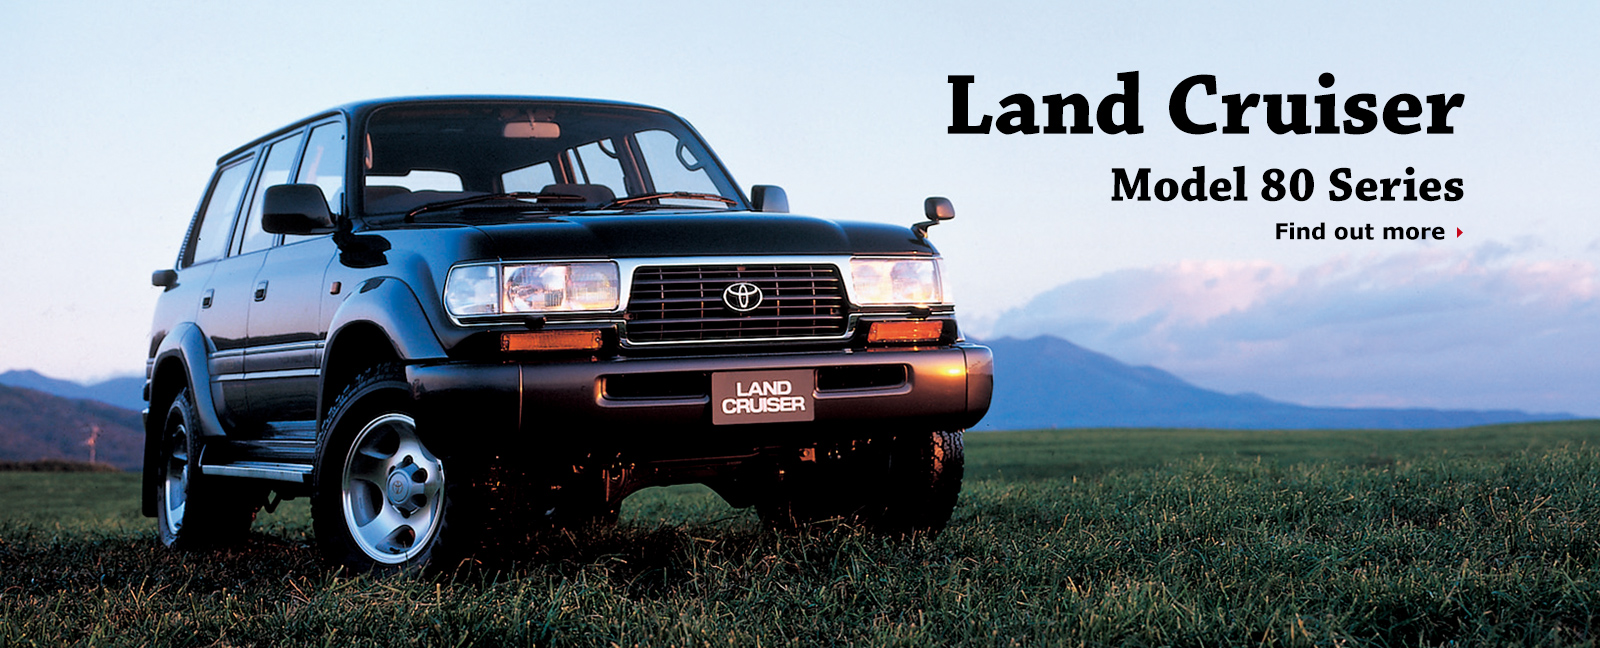 Toyota Global Site Land Cruiser Model 80 Series 01 1960s 4 Door